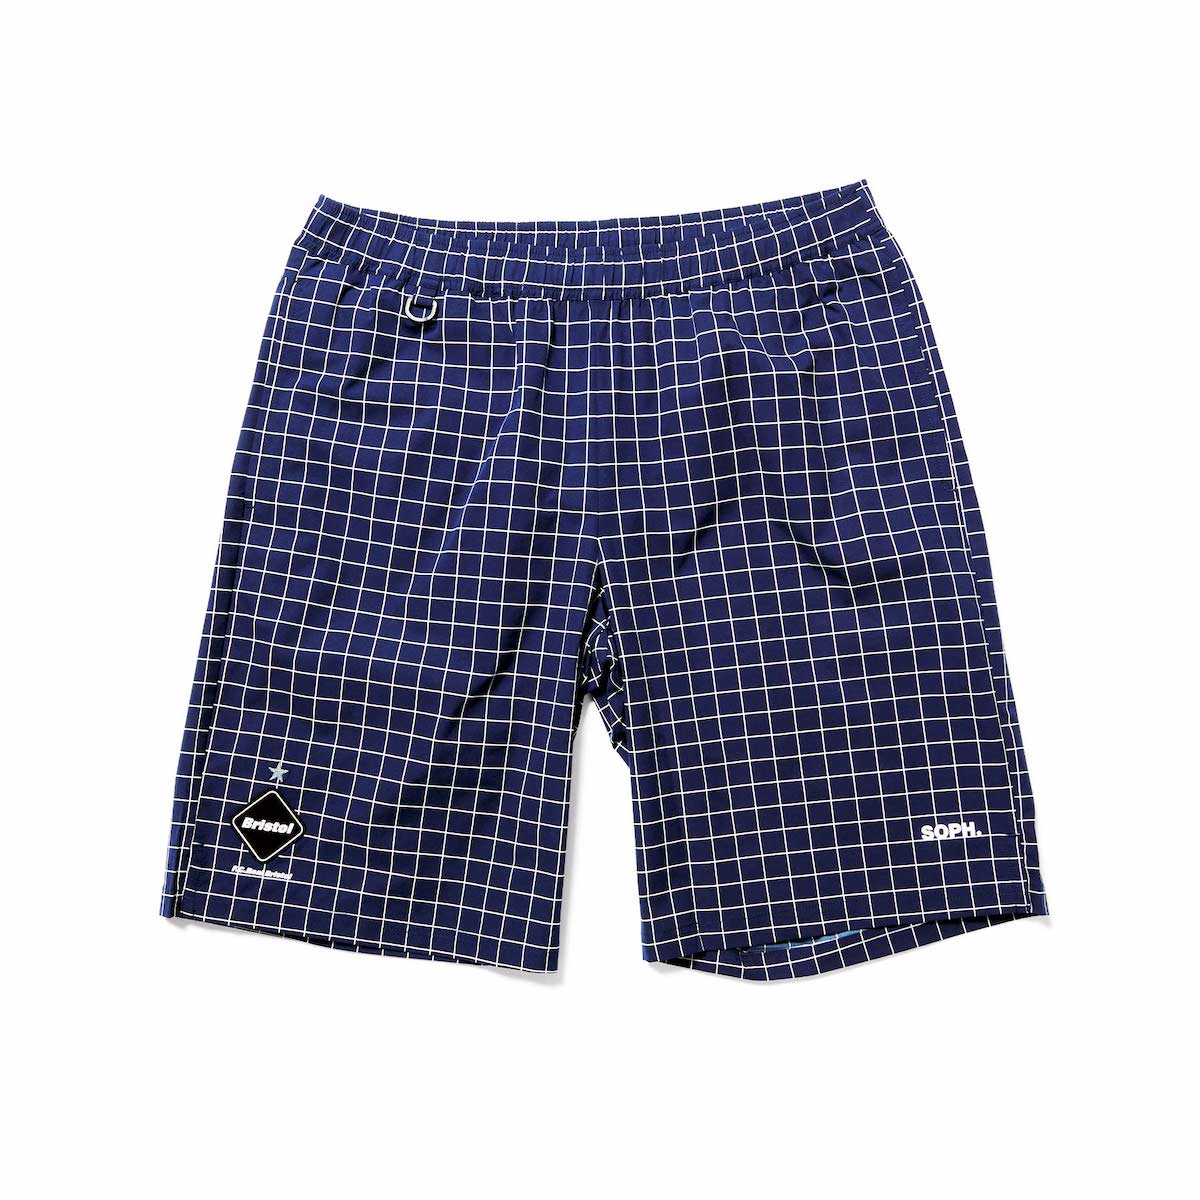 F.C.Real Bristol / PRACTICE SHORTS (Navy)